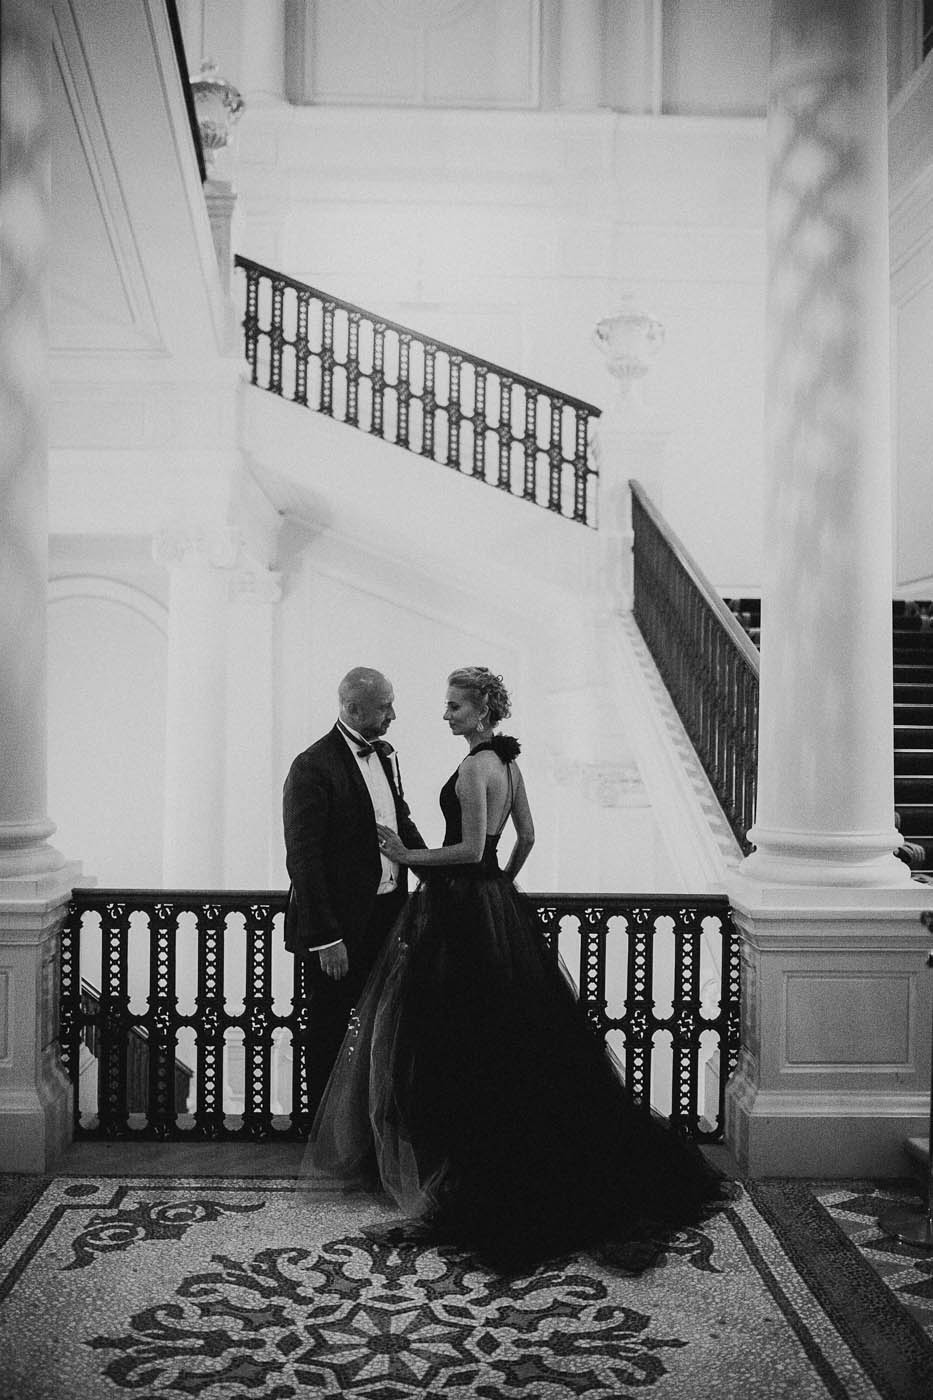 coburg-vienna-wedding-photographer-383